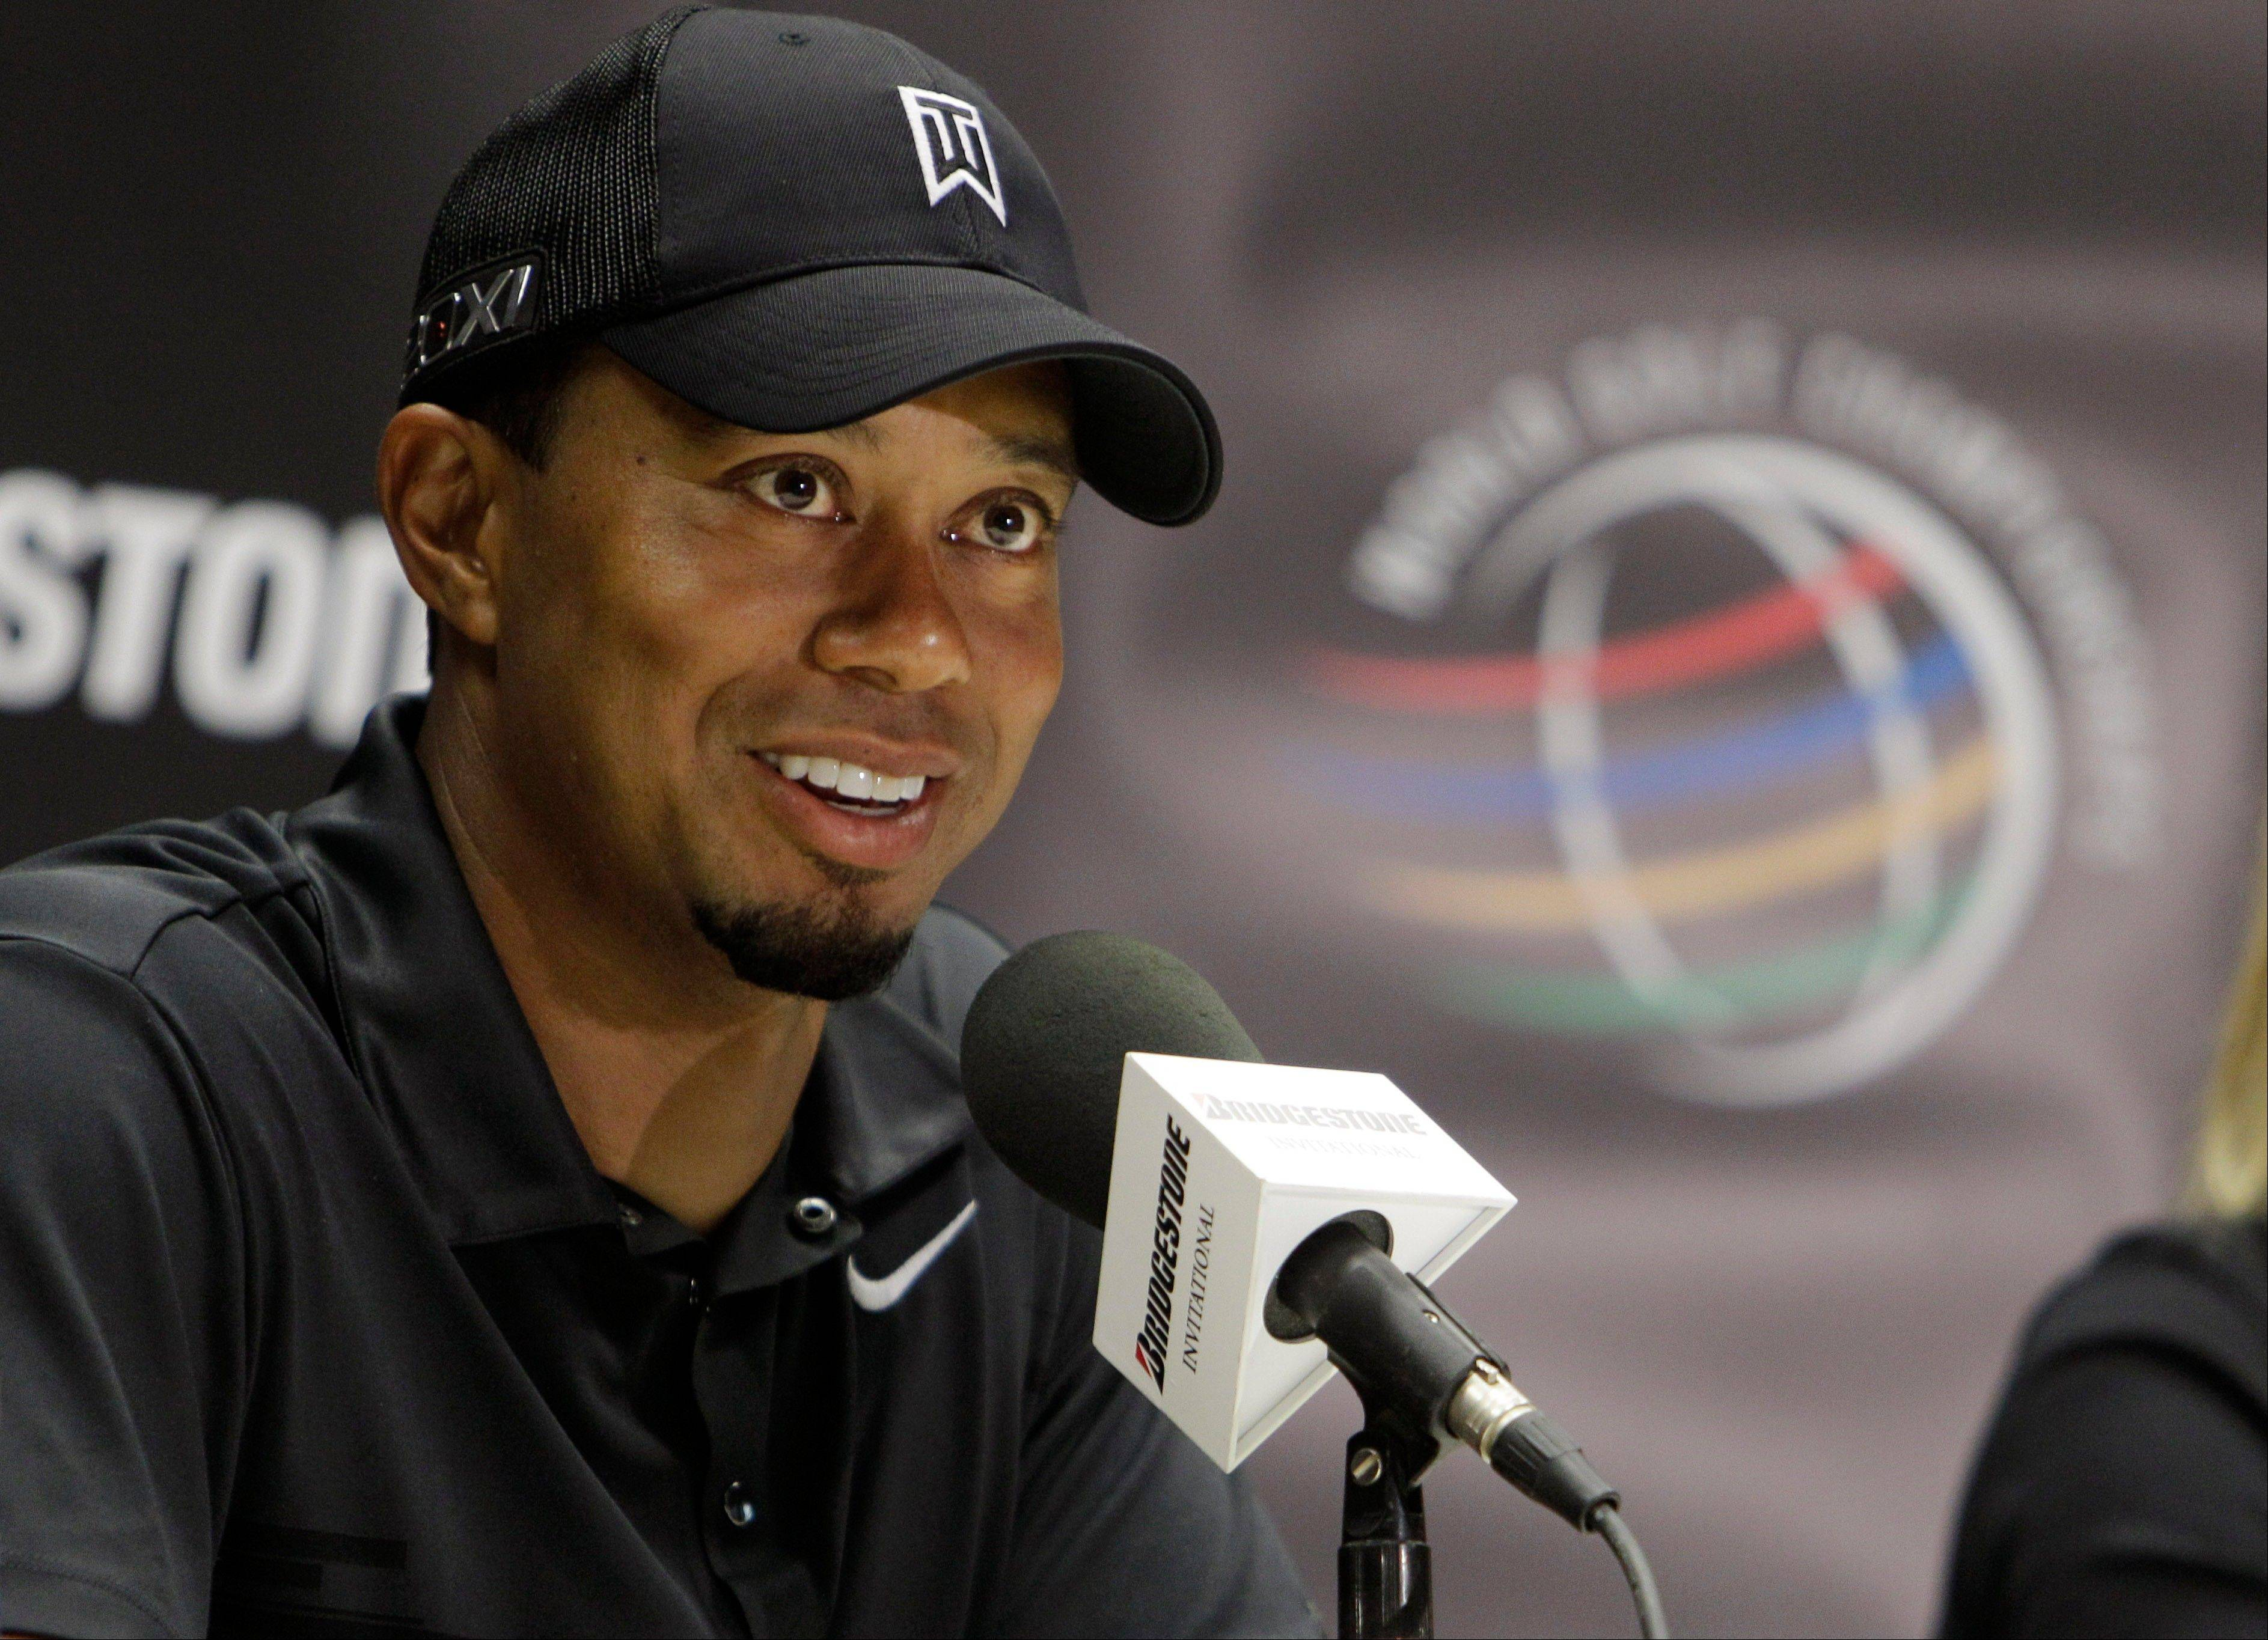 Tiger Woods returns to play in Thursday's opening round of the Bridg